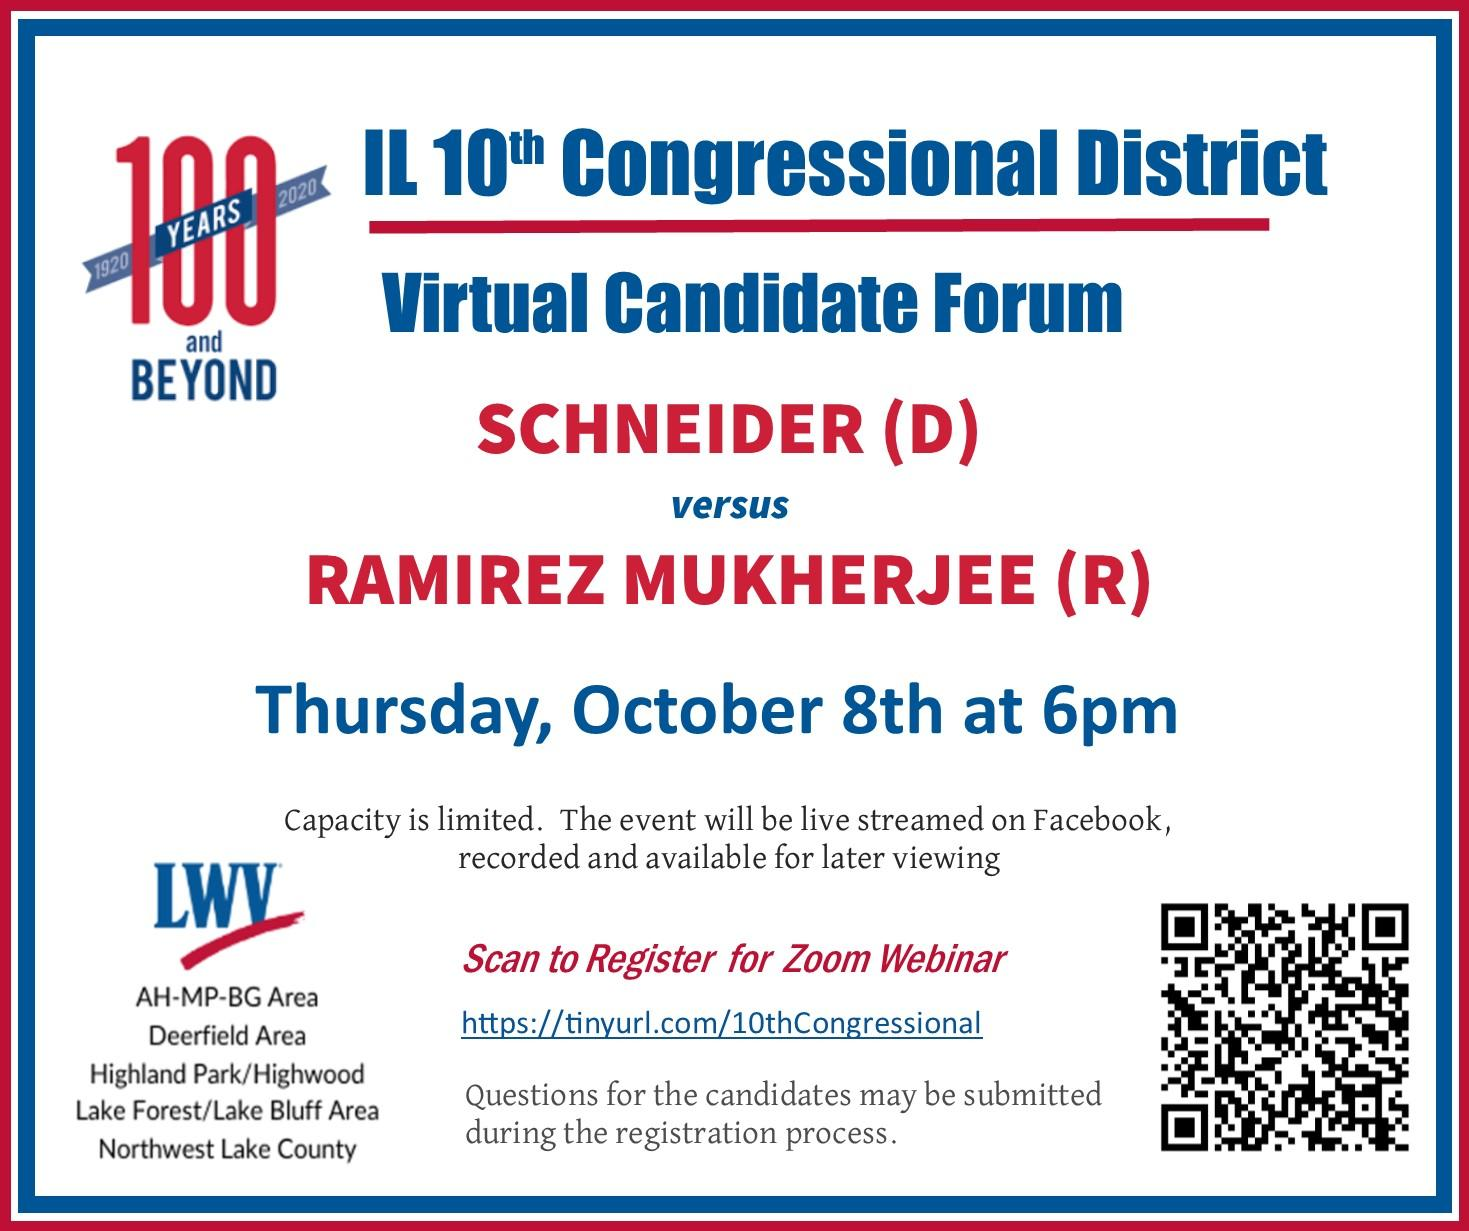 IL 10th Congressional District Virtual Candidate Forum